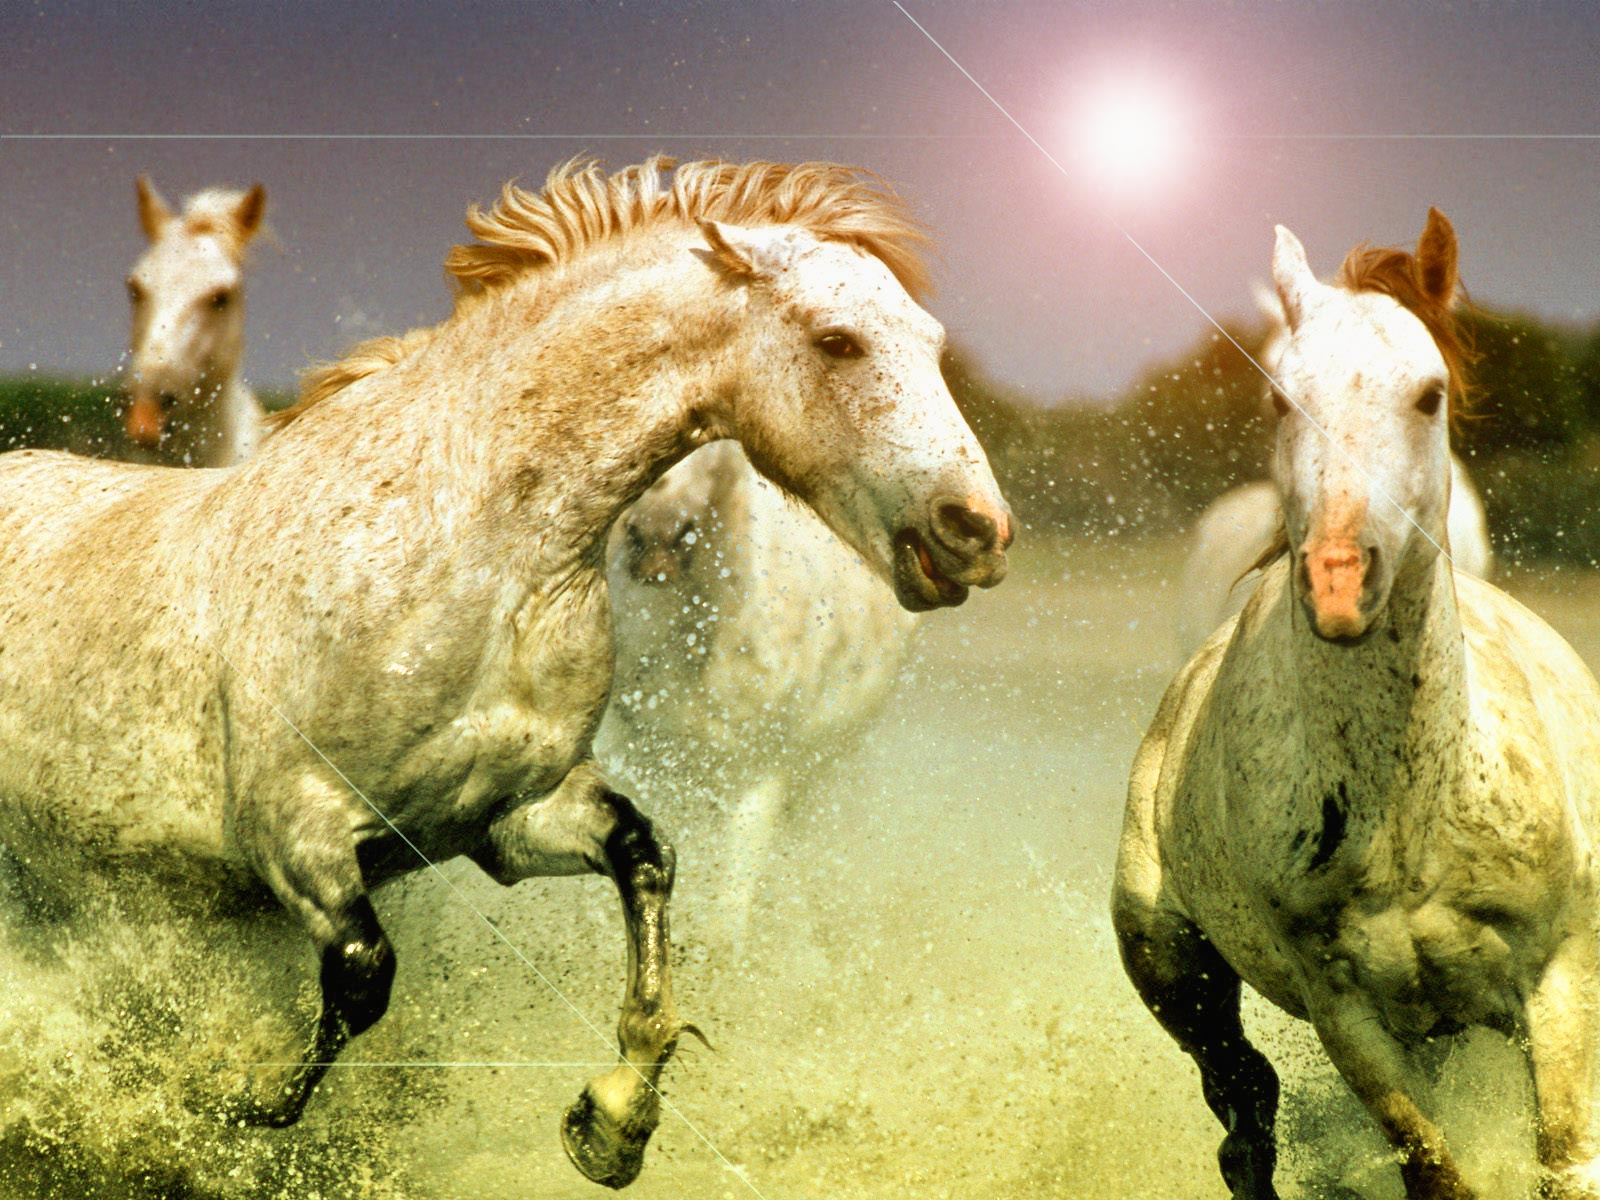 Horse Wallpaper For Phone Posted By Sarah Simpson